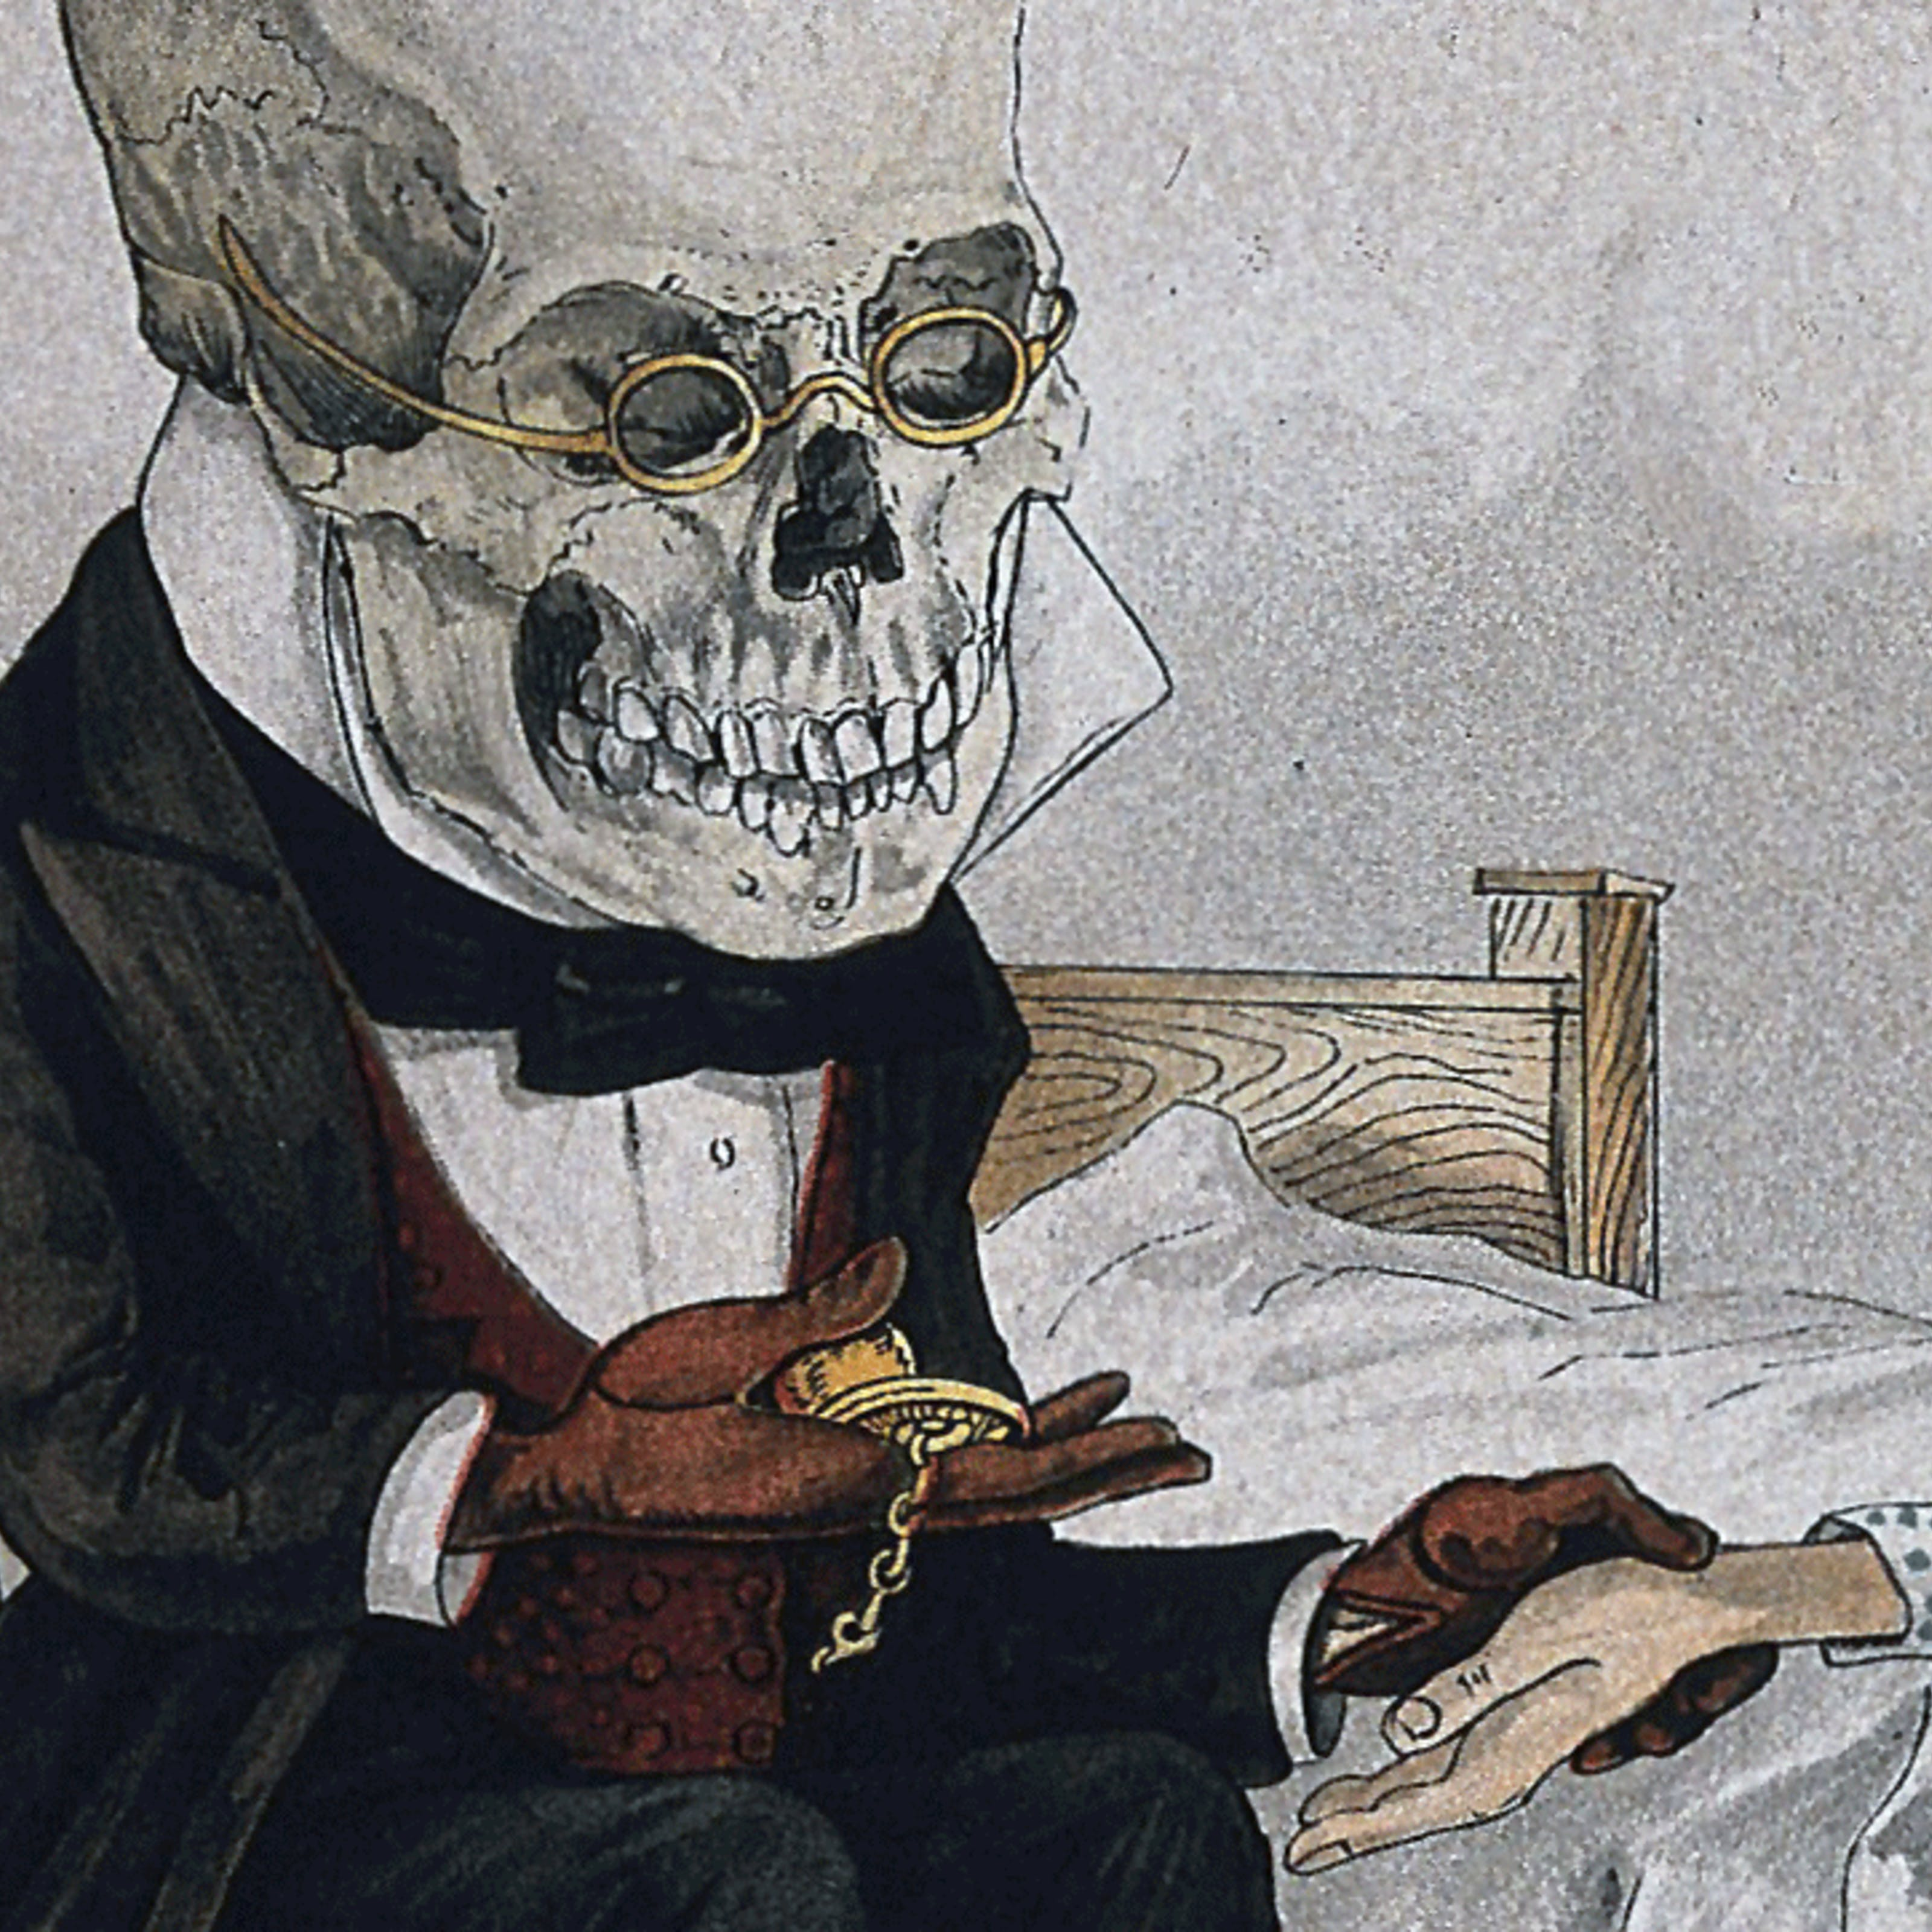 Colour drawing of a person with a bare skull for a head wearing glasses and a frock-coat and using a pocketwatch to take the pulse of the patient whose hand they are holding.